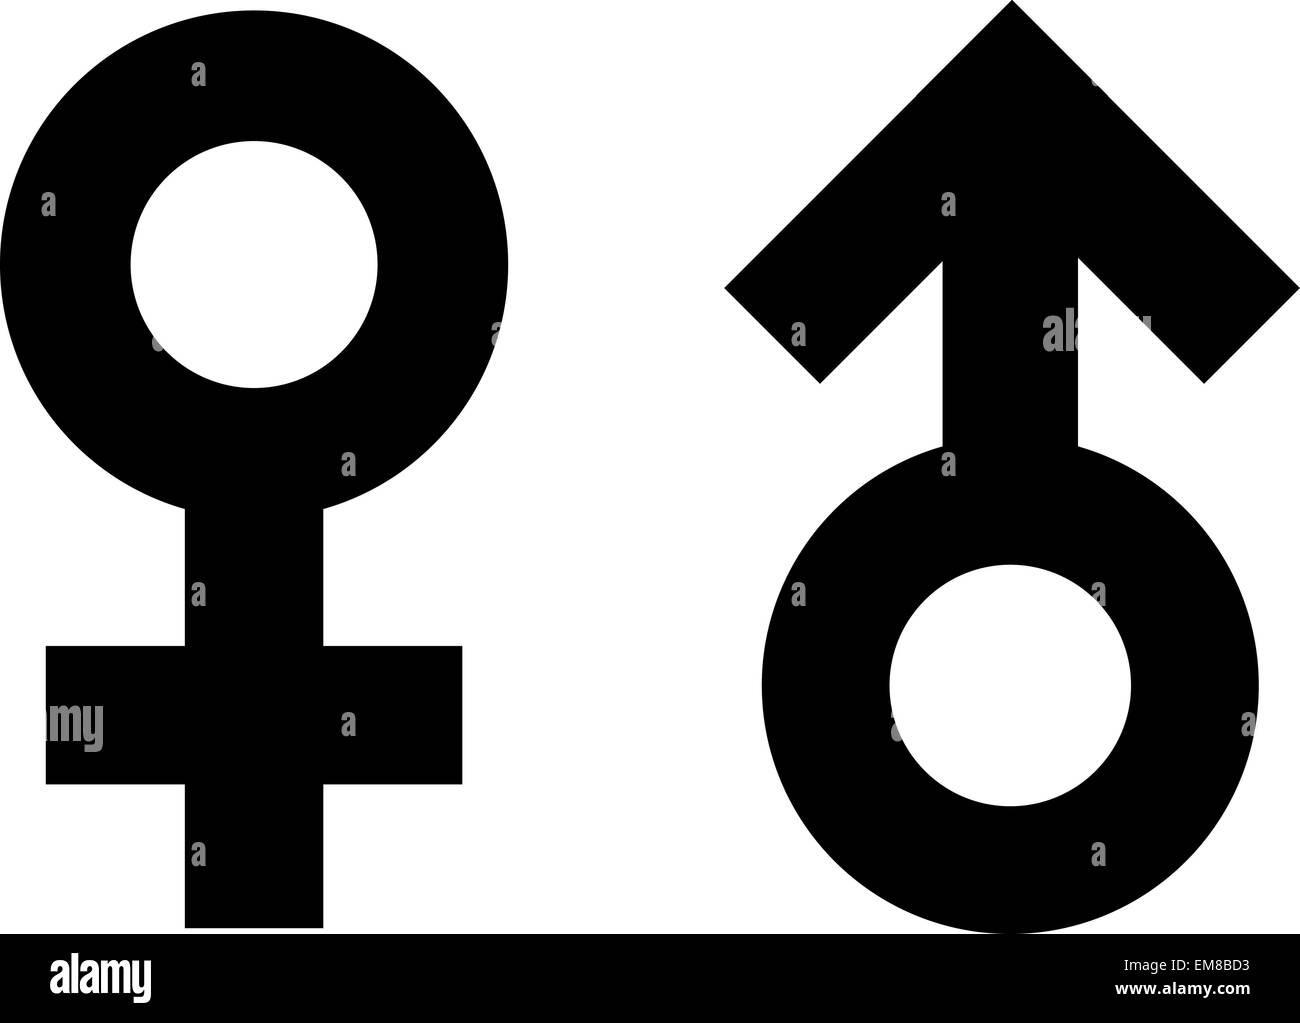 Female Symbol Gender Stock Photos Female Symbol Gender Stock